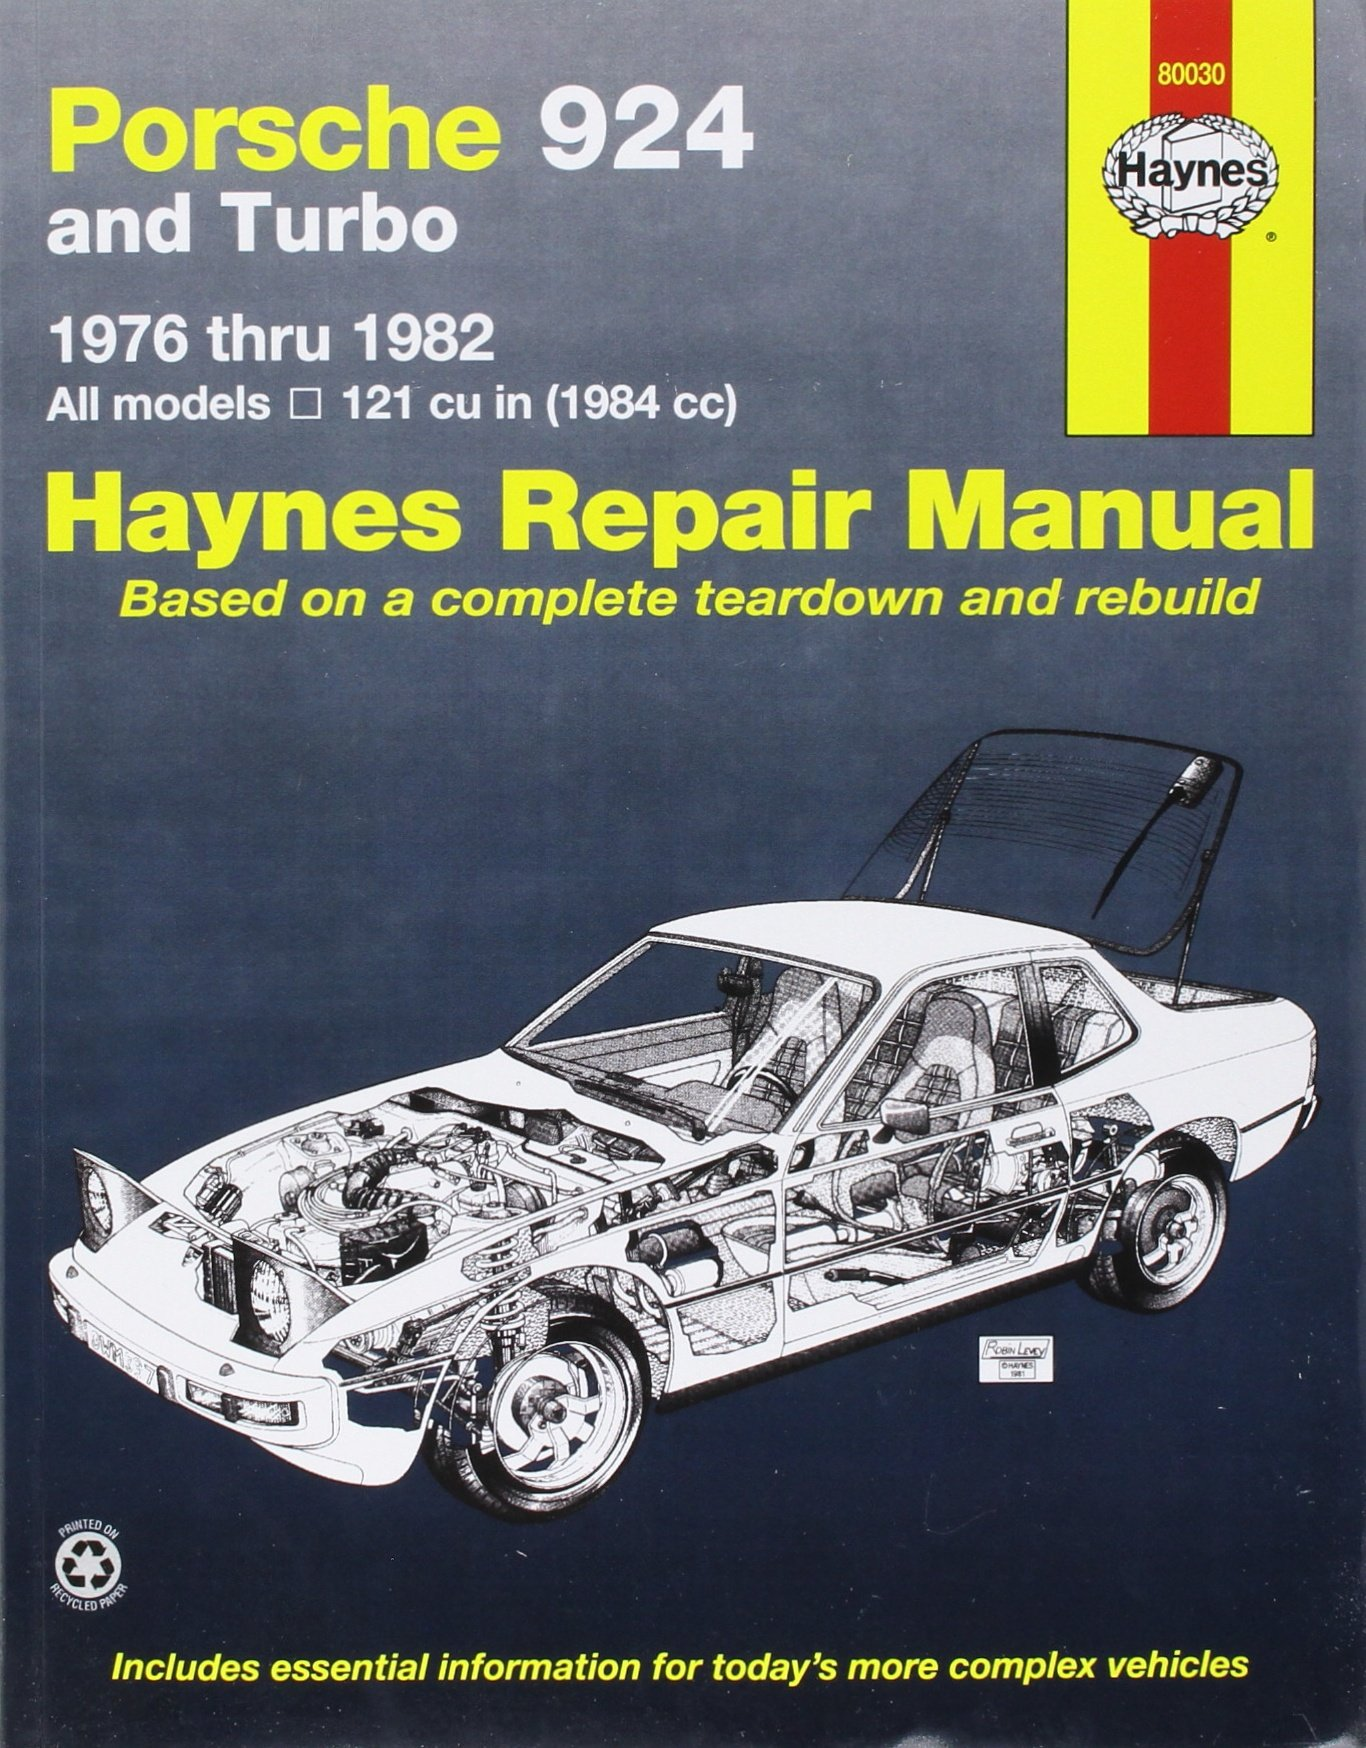 Porsche 924 and Turbo 1976-82 Owners Workshop Manual Haynes Manuals: Amazon.es: J. H. Haynes, Charles Lipton: Libros en idiomas extranjeros